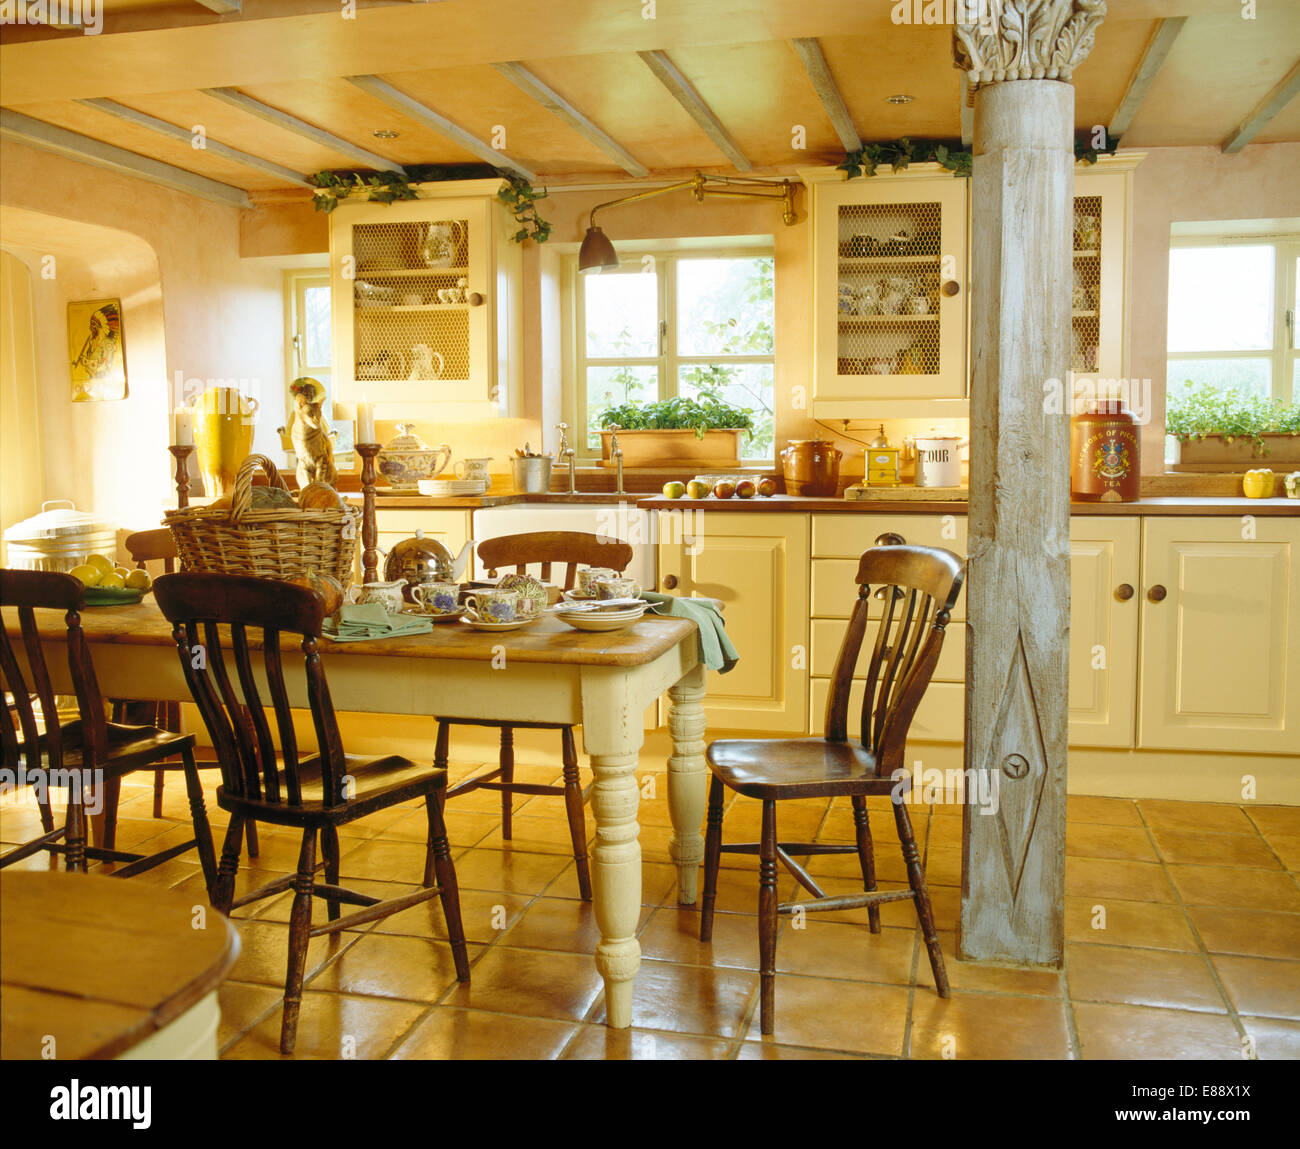 Cottage Kitchen Furniture Old Wooden Chairs At Painted Table In Cottage Kitchen With